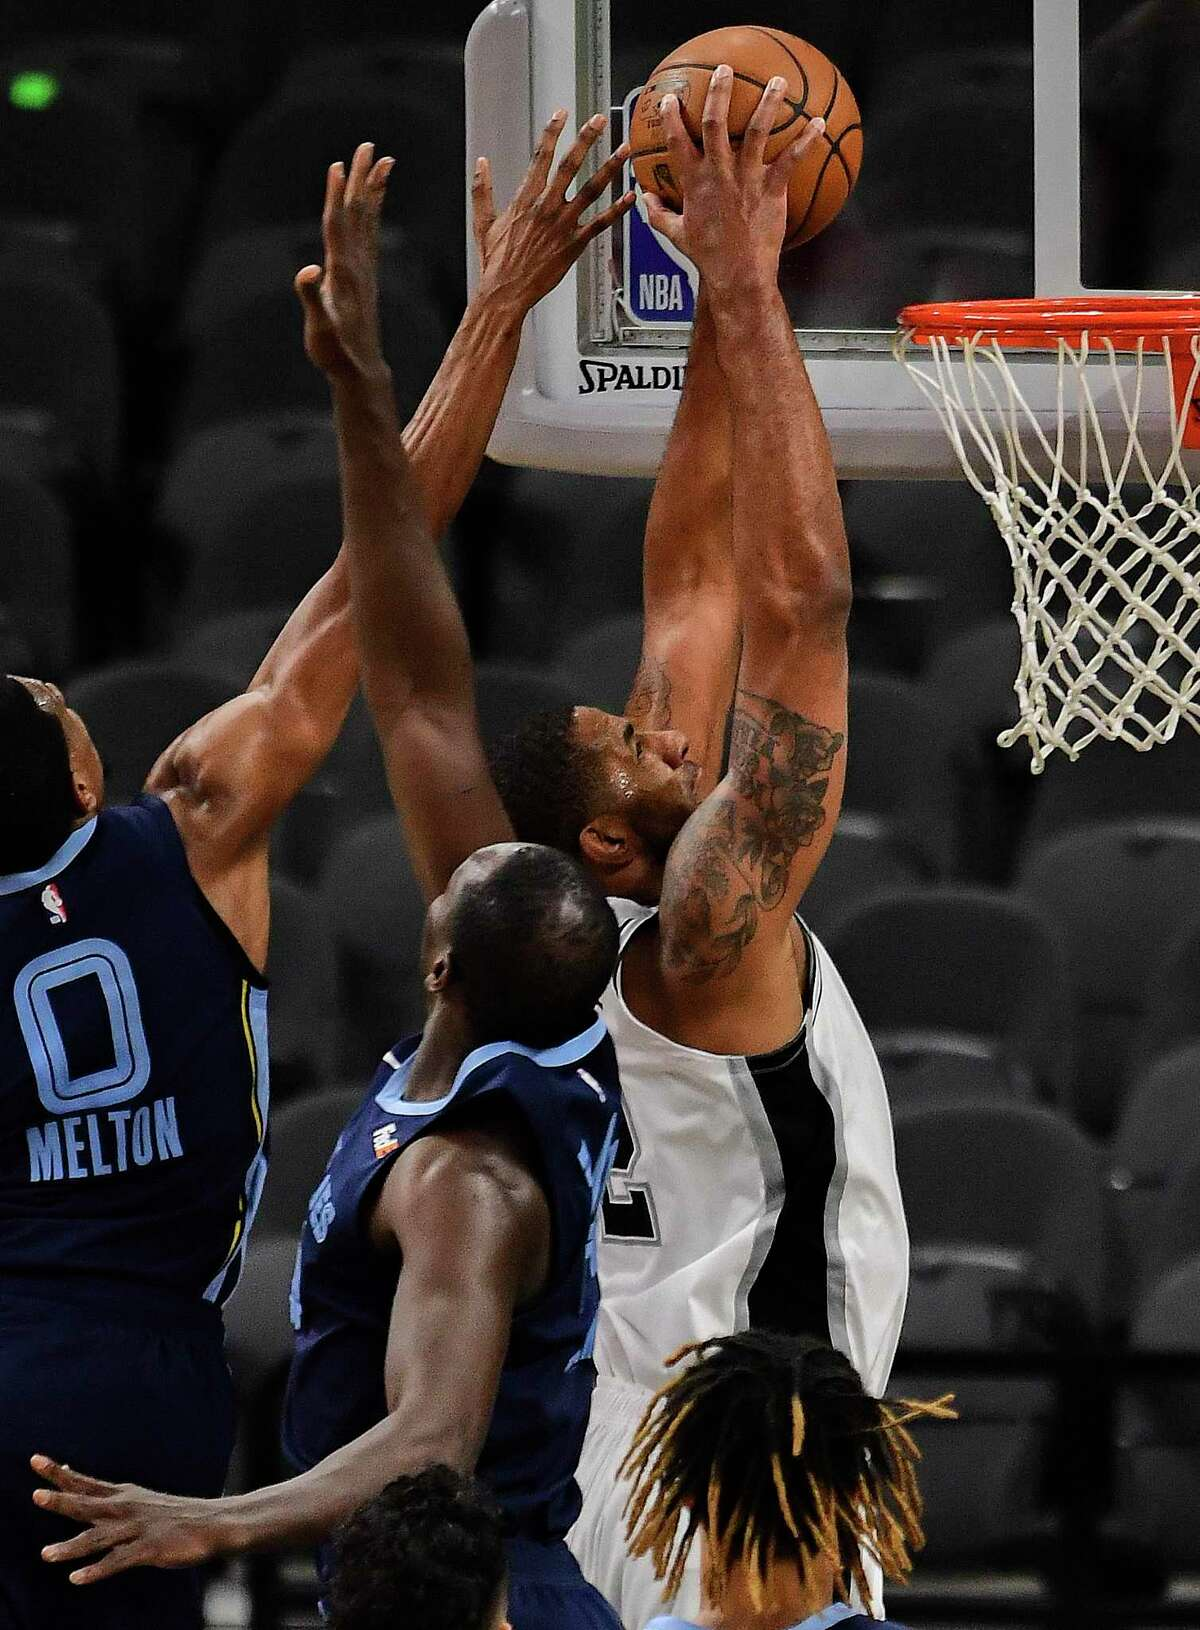 LaMarcus Aldridge of the San Antonio Spurs, in white, dunks against the Memphis Grizzlies during first-half NBA action in the AT&T Center on Monday, Feb. 1. 2021.